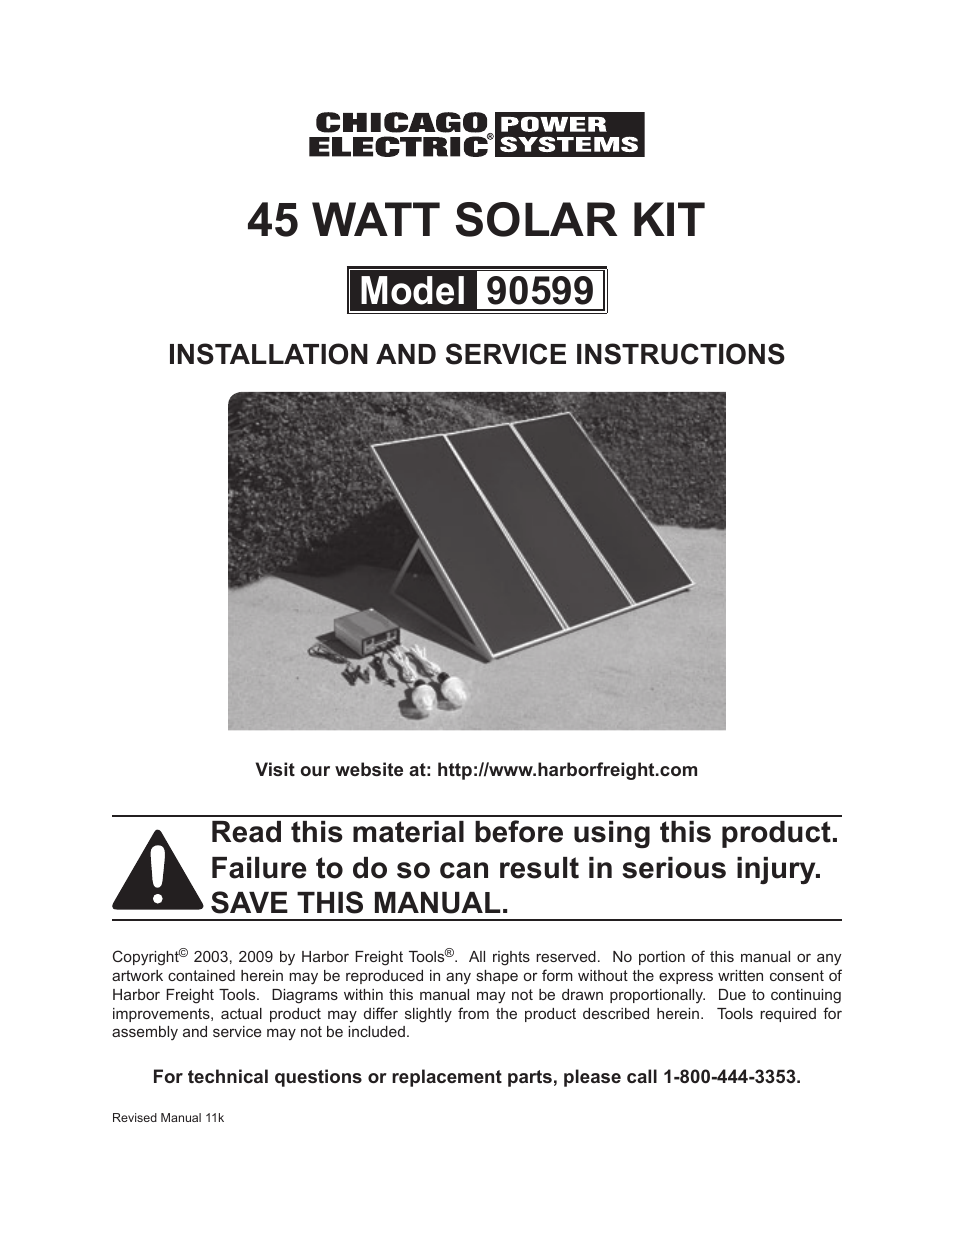 Chicago Electric 45 Watt Solar Kit 90599 User Manual | 11 pages on sears solar panels, do it yourself solar panels, installing solar panels, northern tool solar panels, macy's solar panels, pretty solar panels, mini solar panels, home depot solar panels, portable solar power panels, smartpool solar panels, old solar panels, lowe's solar panels, hot air solar panels, amazon solar panels, roll up solar panels, menards solar panels, costco solar panels, ebay solar panels, used solar panels, build solar panels,